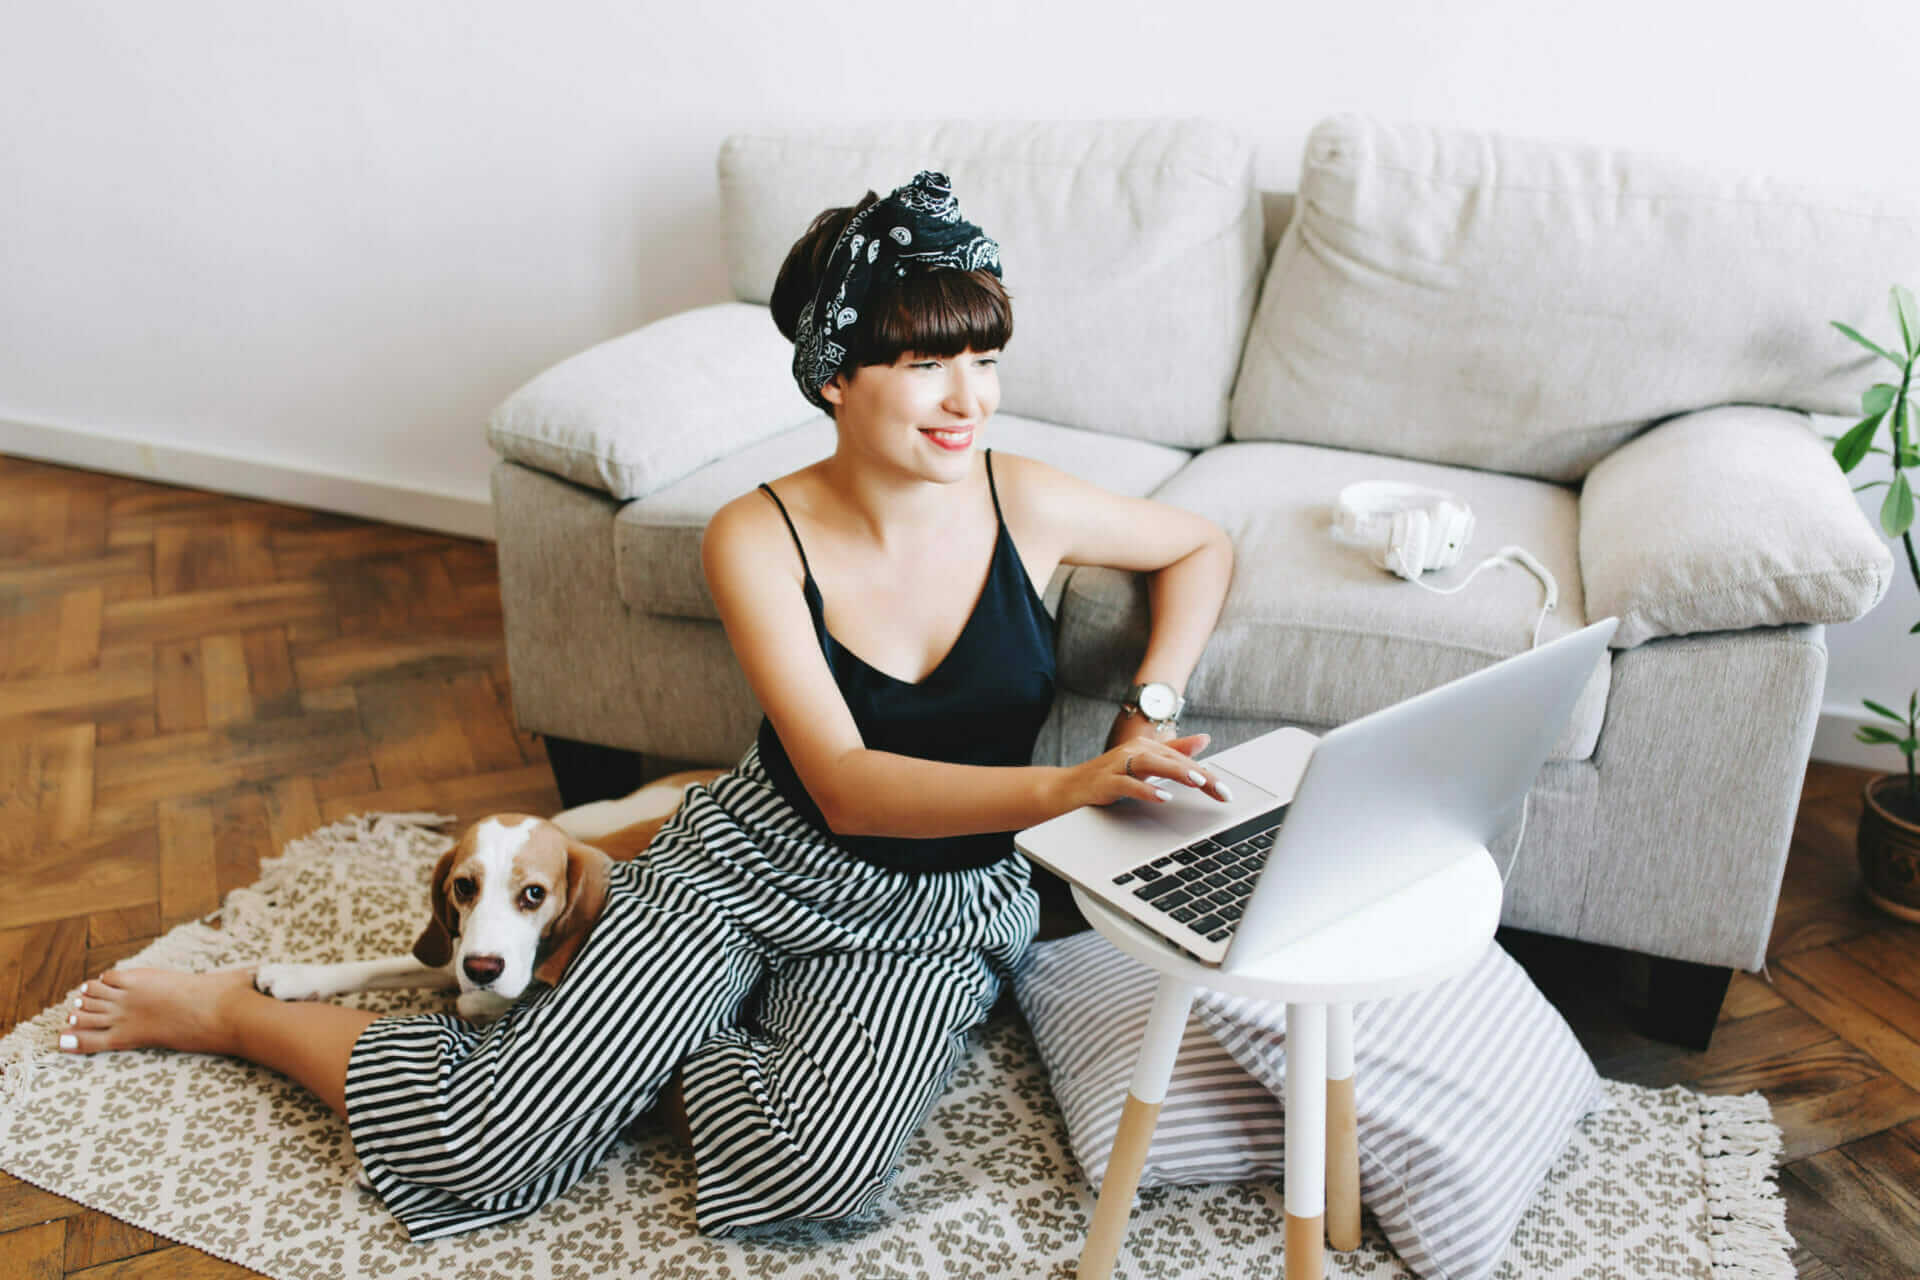 A woman using a laptop at home